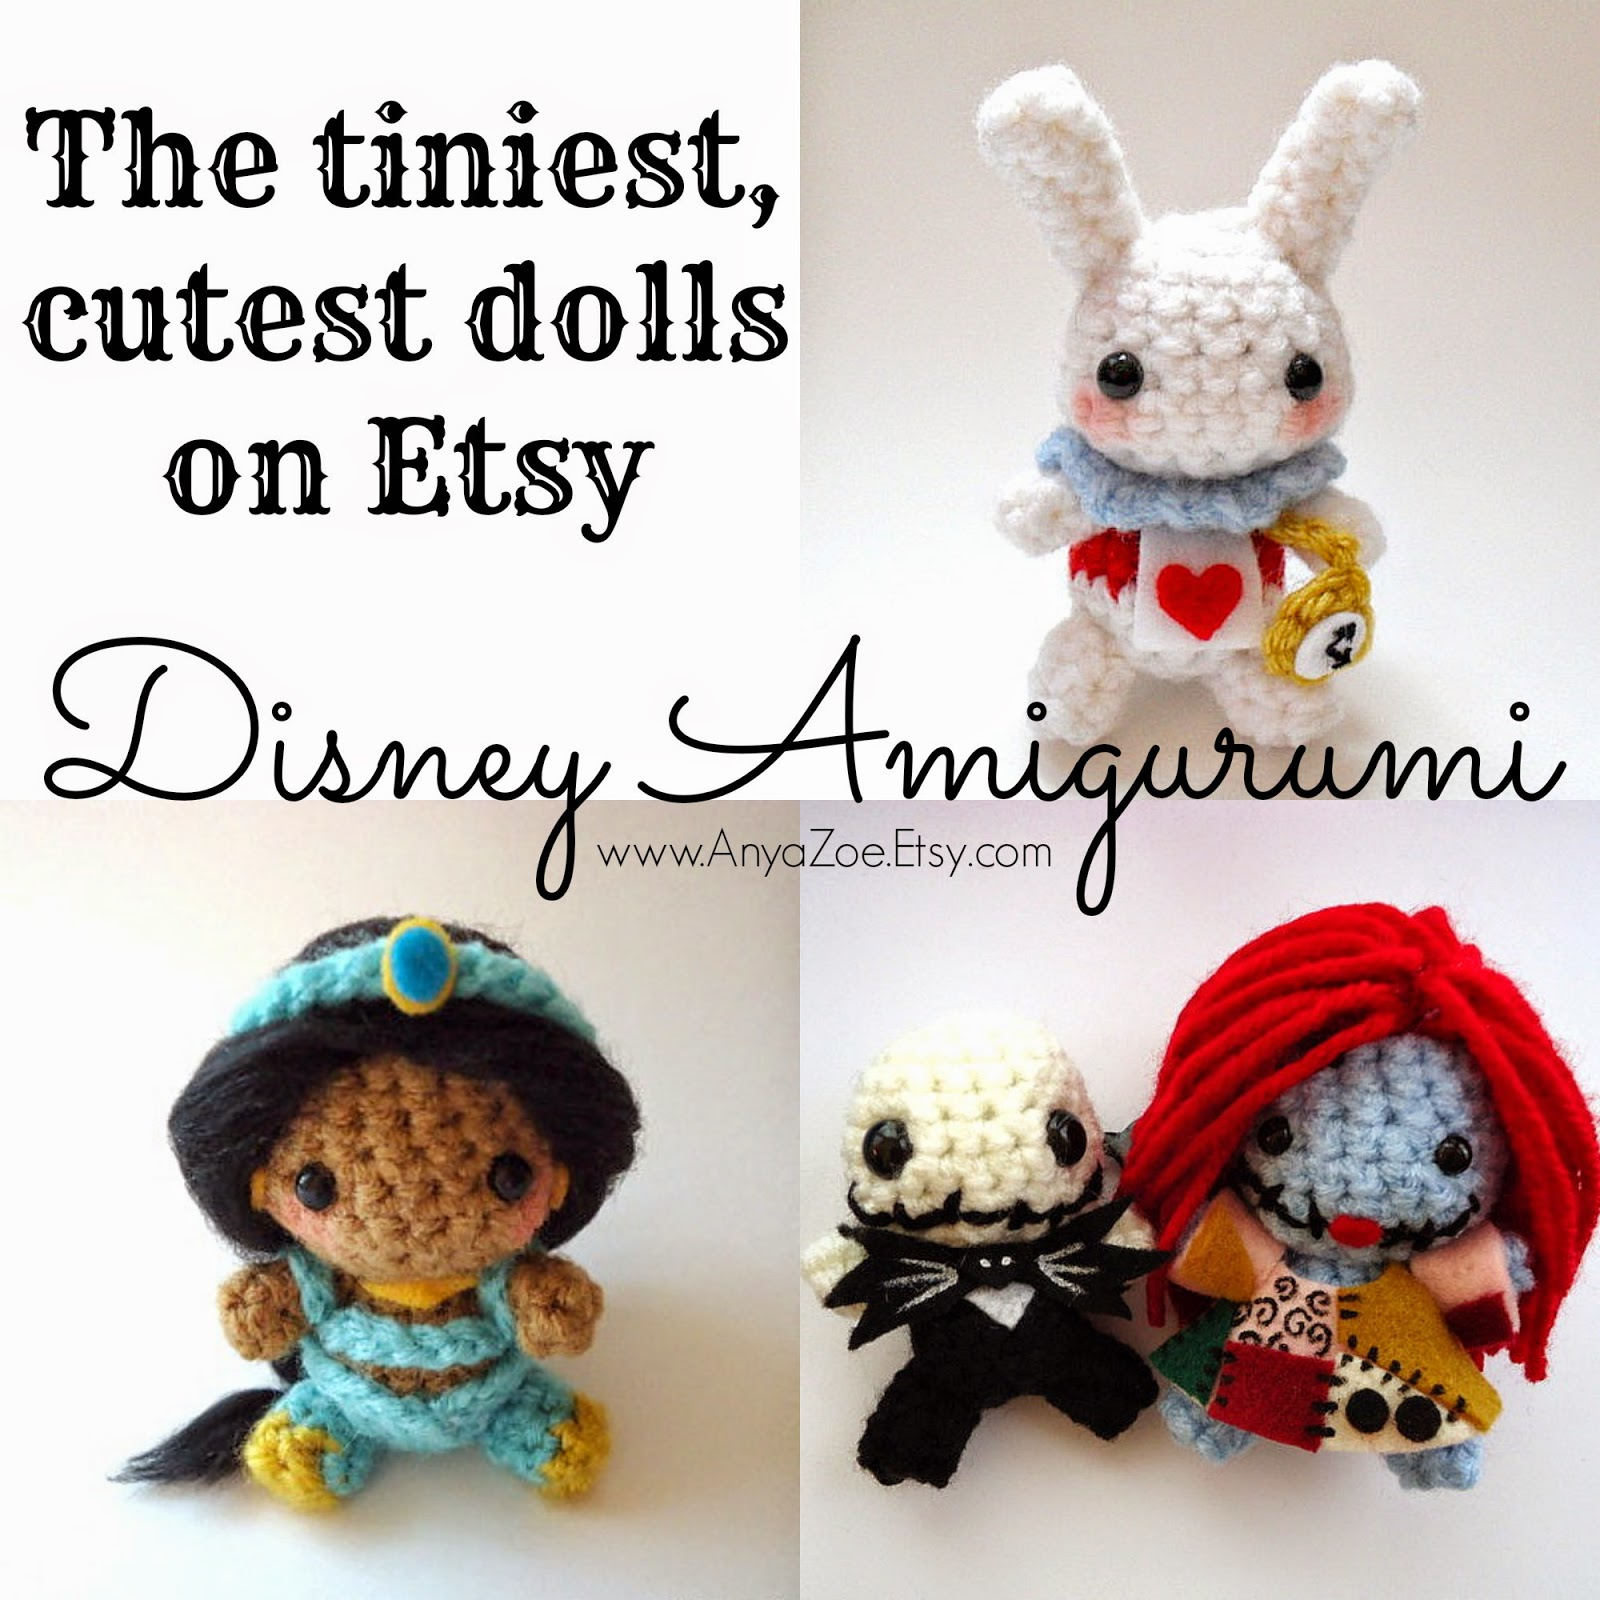 Cute Tiny Amigurumi Patterns | Crochet amigurumi free patterns ... | 1600x1600